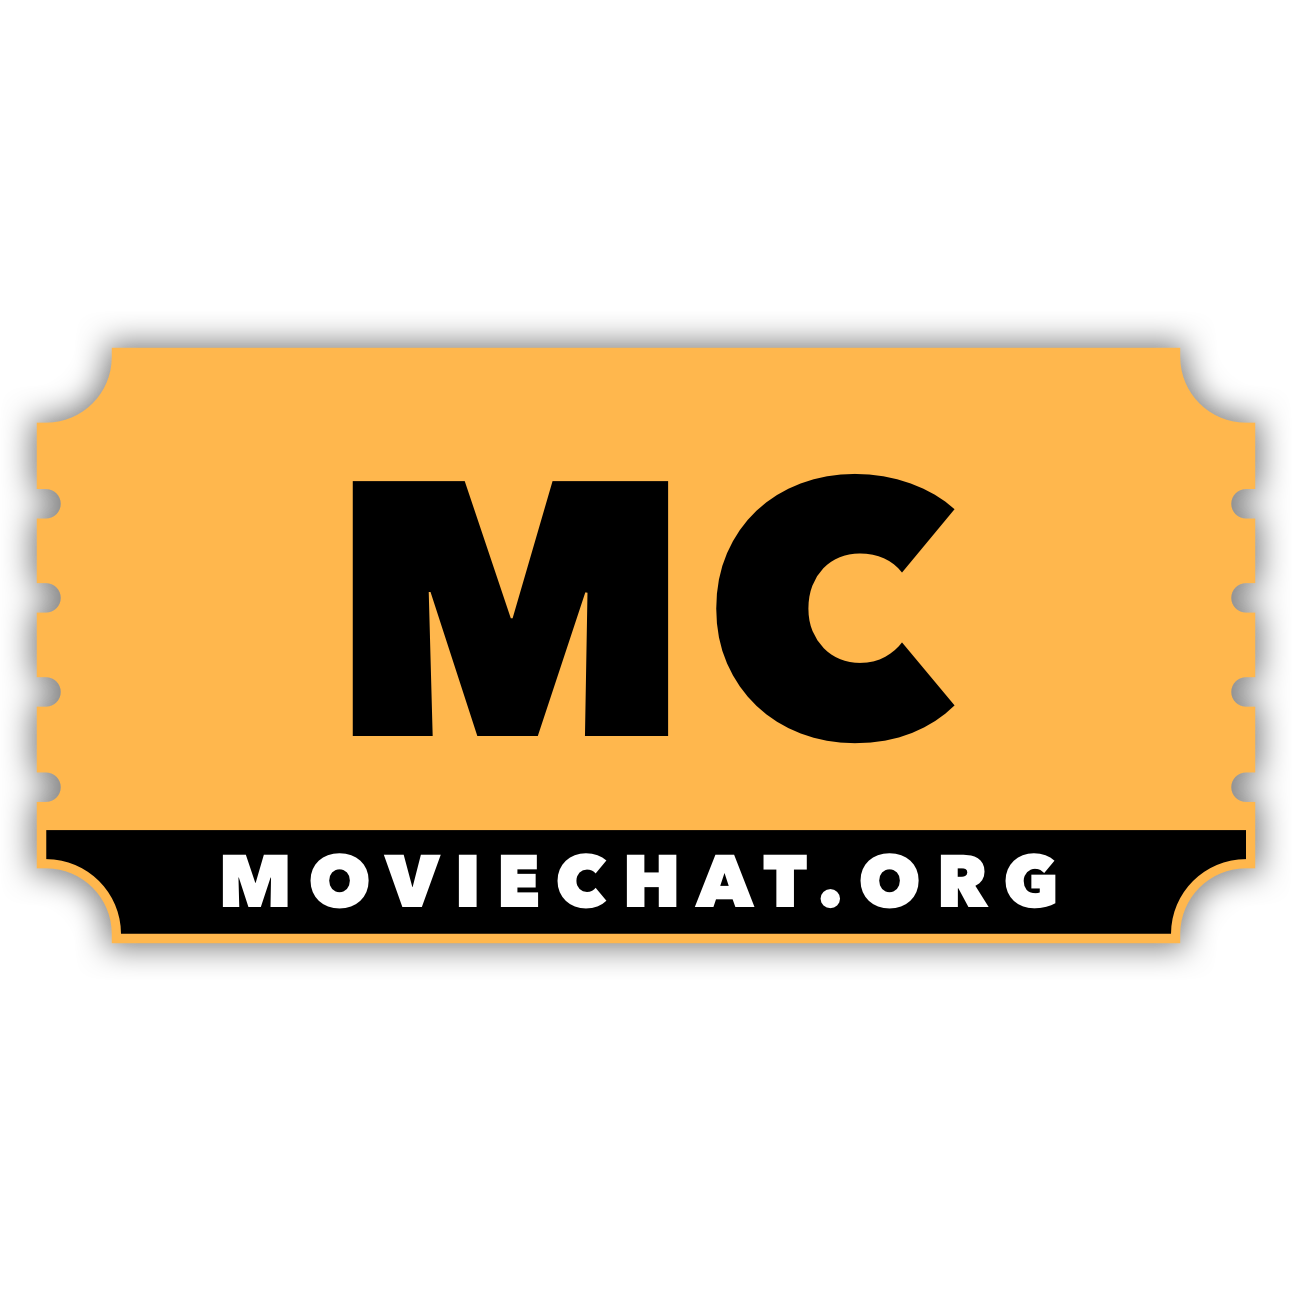 MovieChat - Discuss Movies, TV, Celebrities | Forum, Reviews